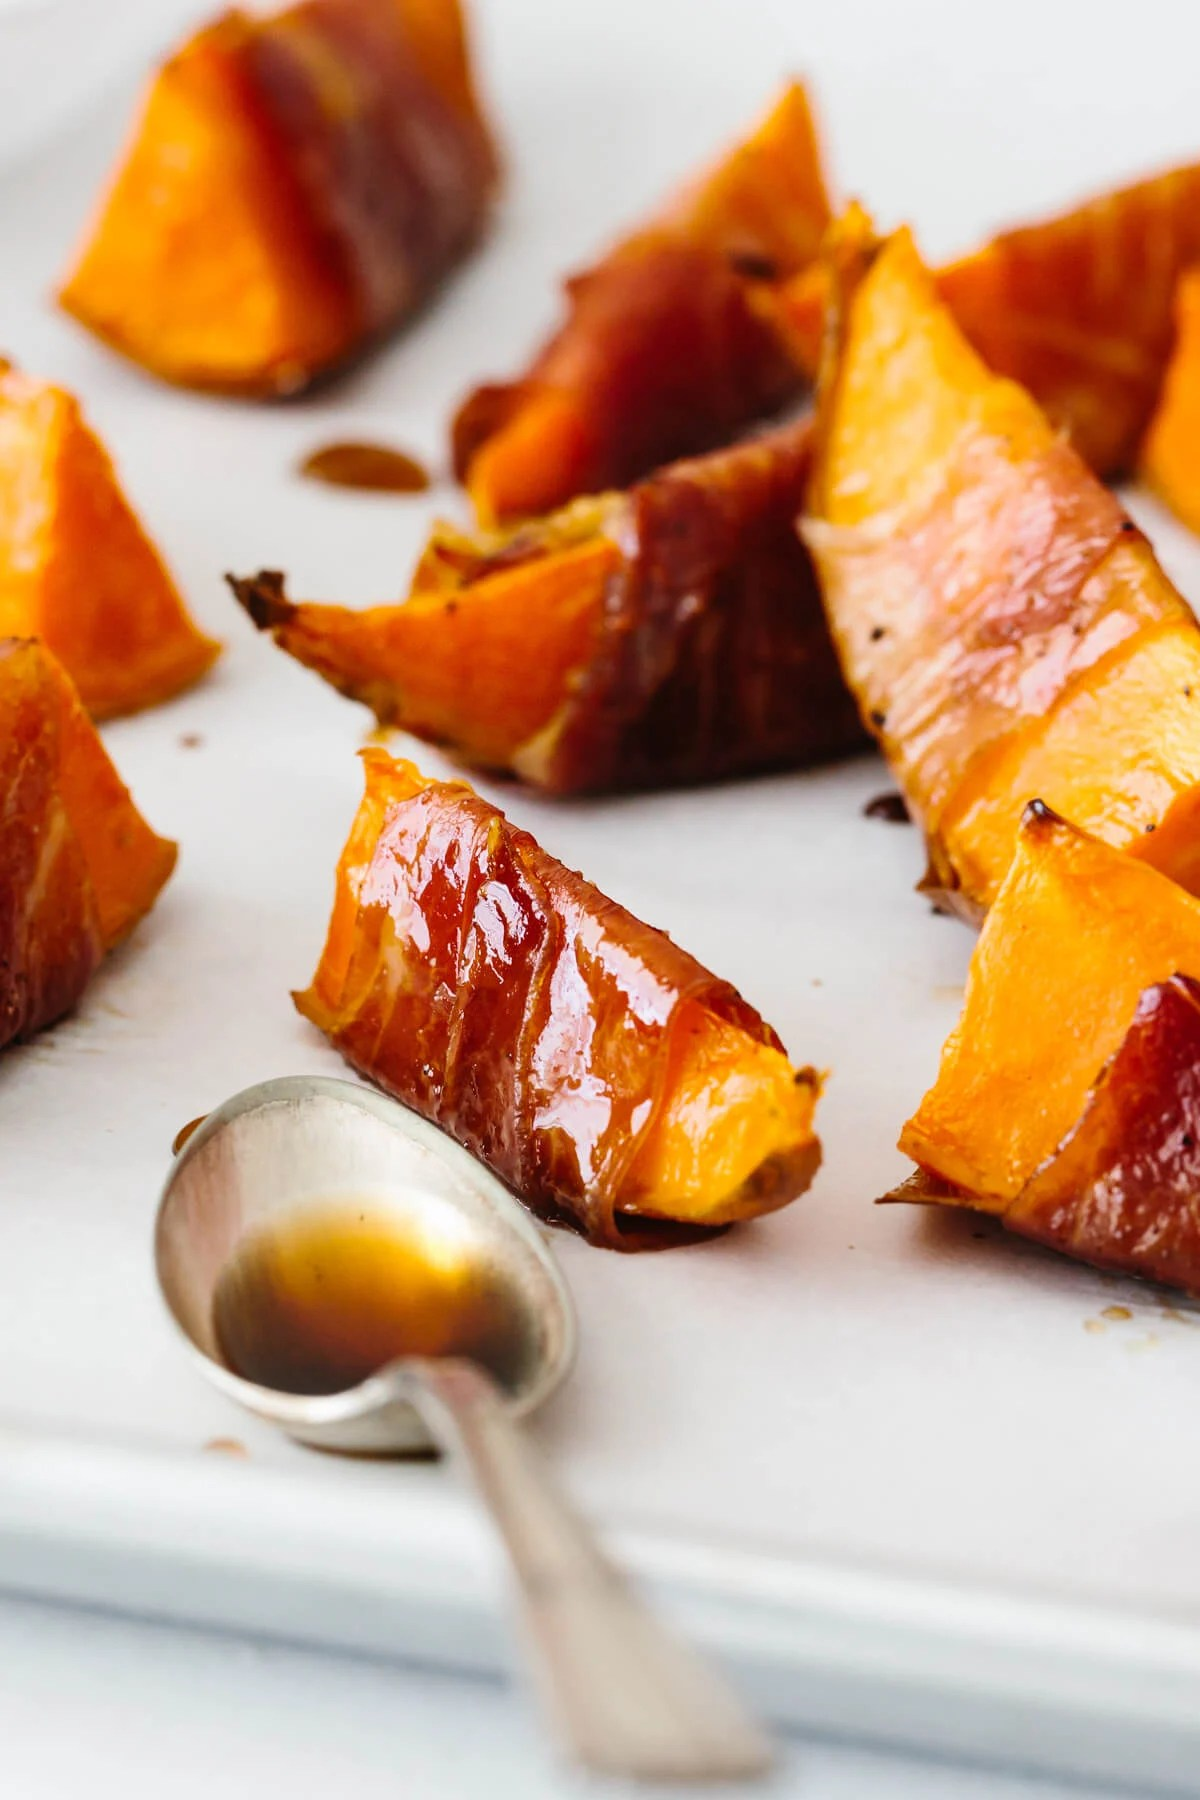 A single piece of sweet potato wrapped in prosciutto and baked.